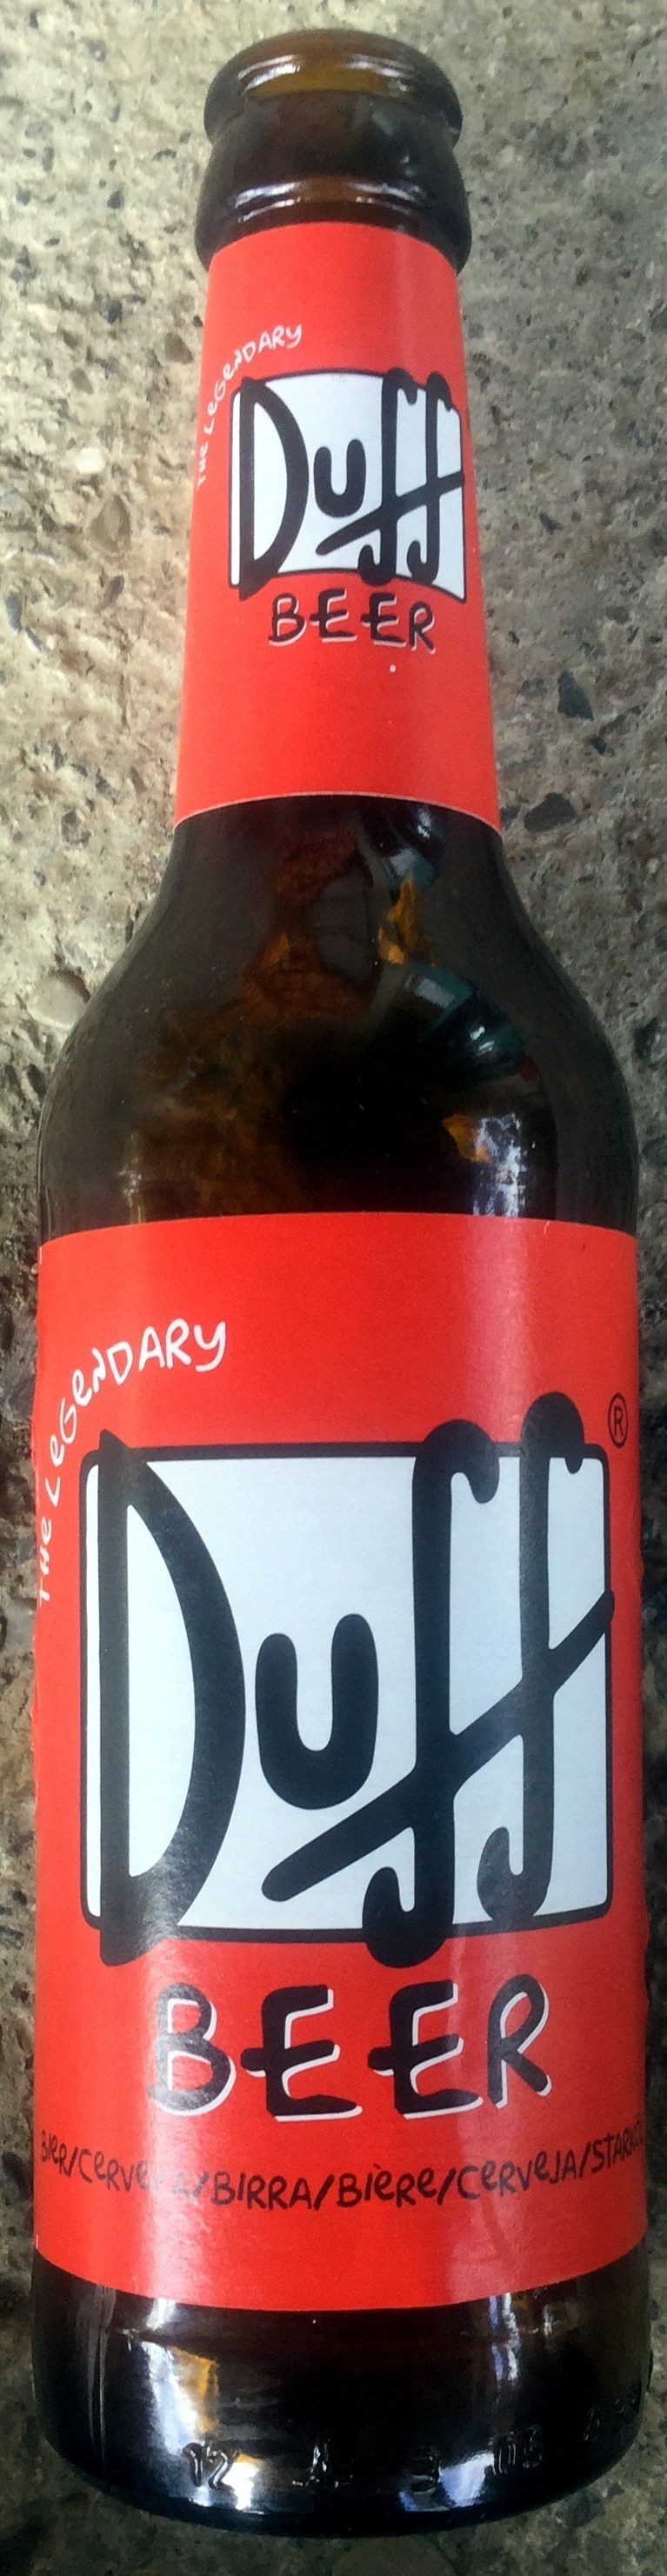 The legendary Duff Beer - Product